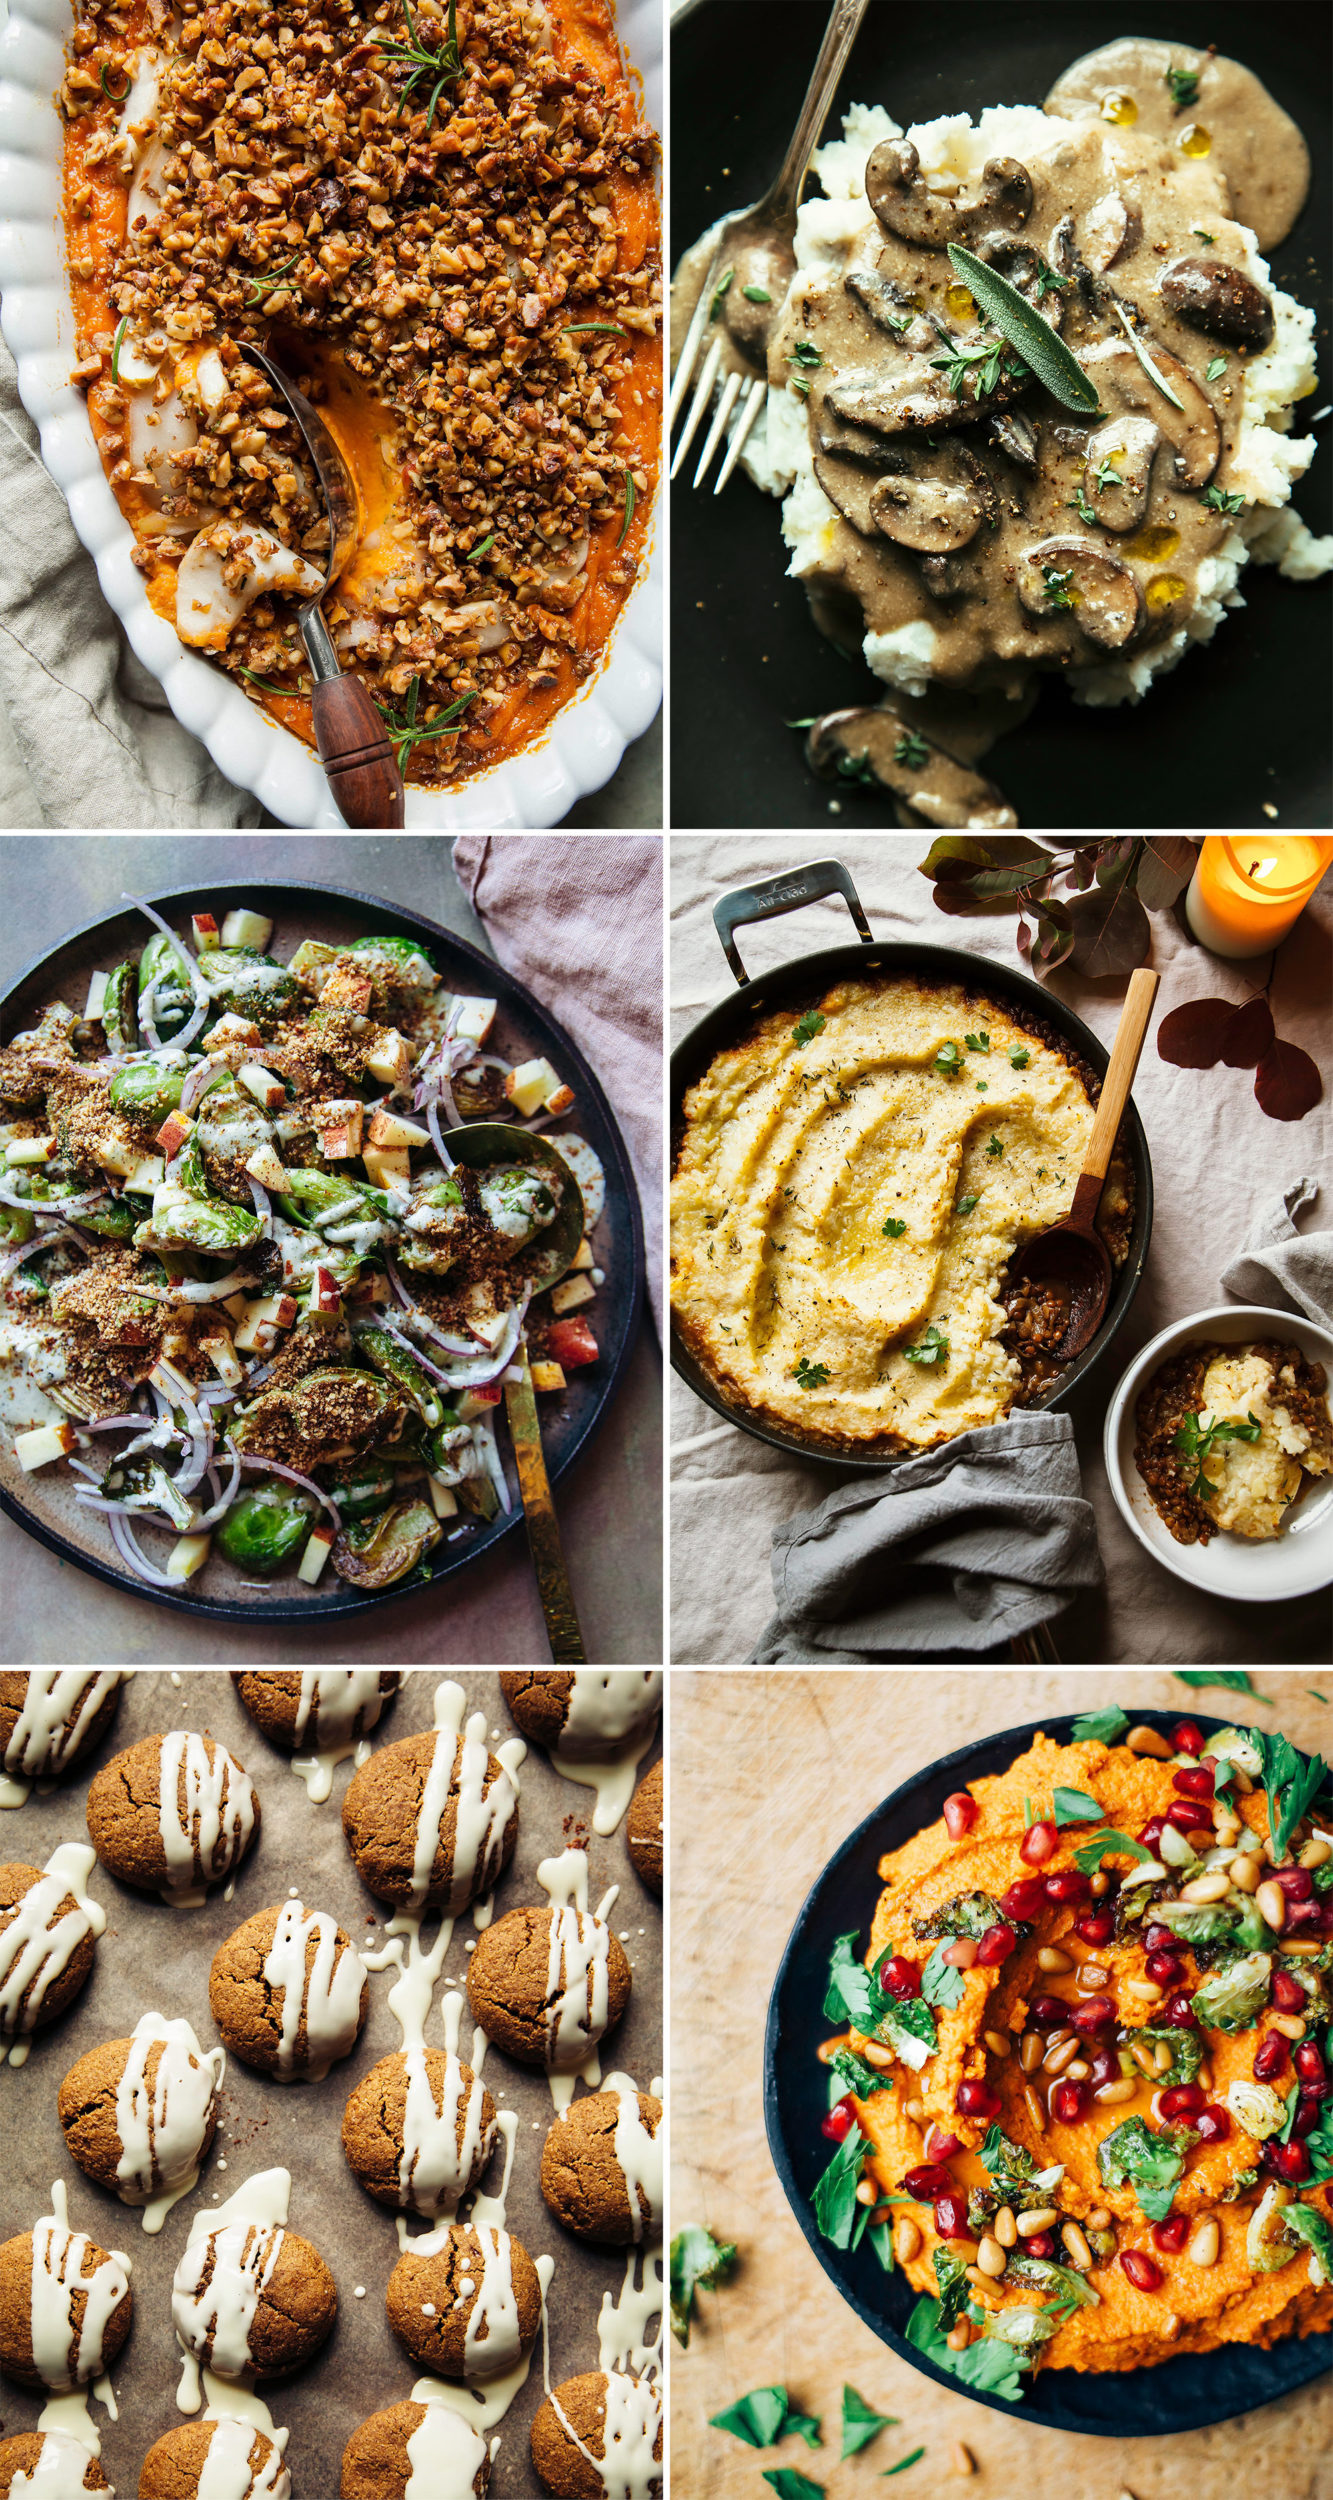 6 images in a grid show overhead shots of: a sweet potato casserole topped with nuts, creamy mushroom gravy on top of mashed potatoes, a brussels sprouts salad with creamy dressing and apples, a shepherd's pie cooke din a skillet, ginger cookies drizzled with melted white chocolate, and a bright orange carrot dip topped with herbs and pomegranate seeds.